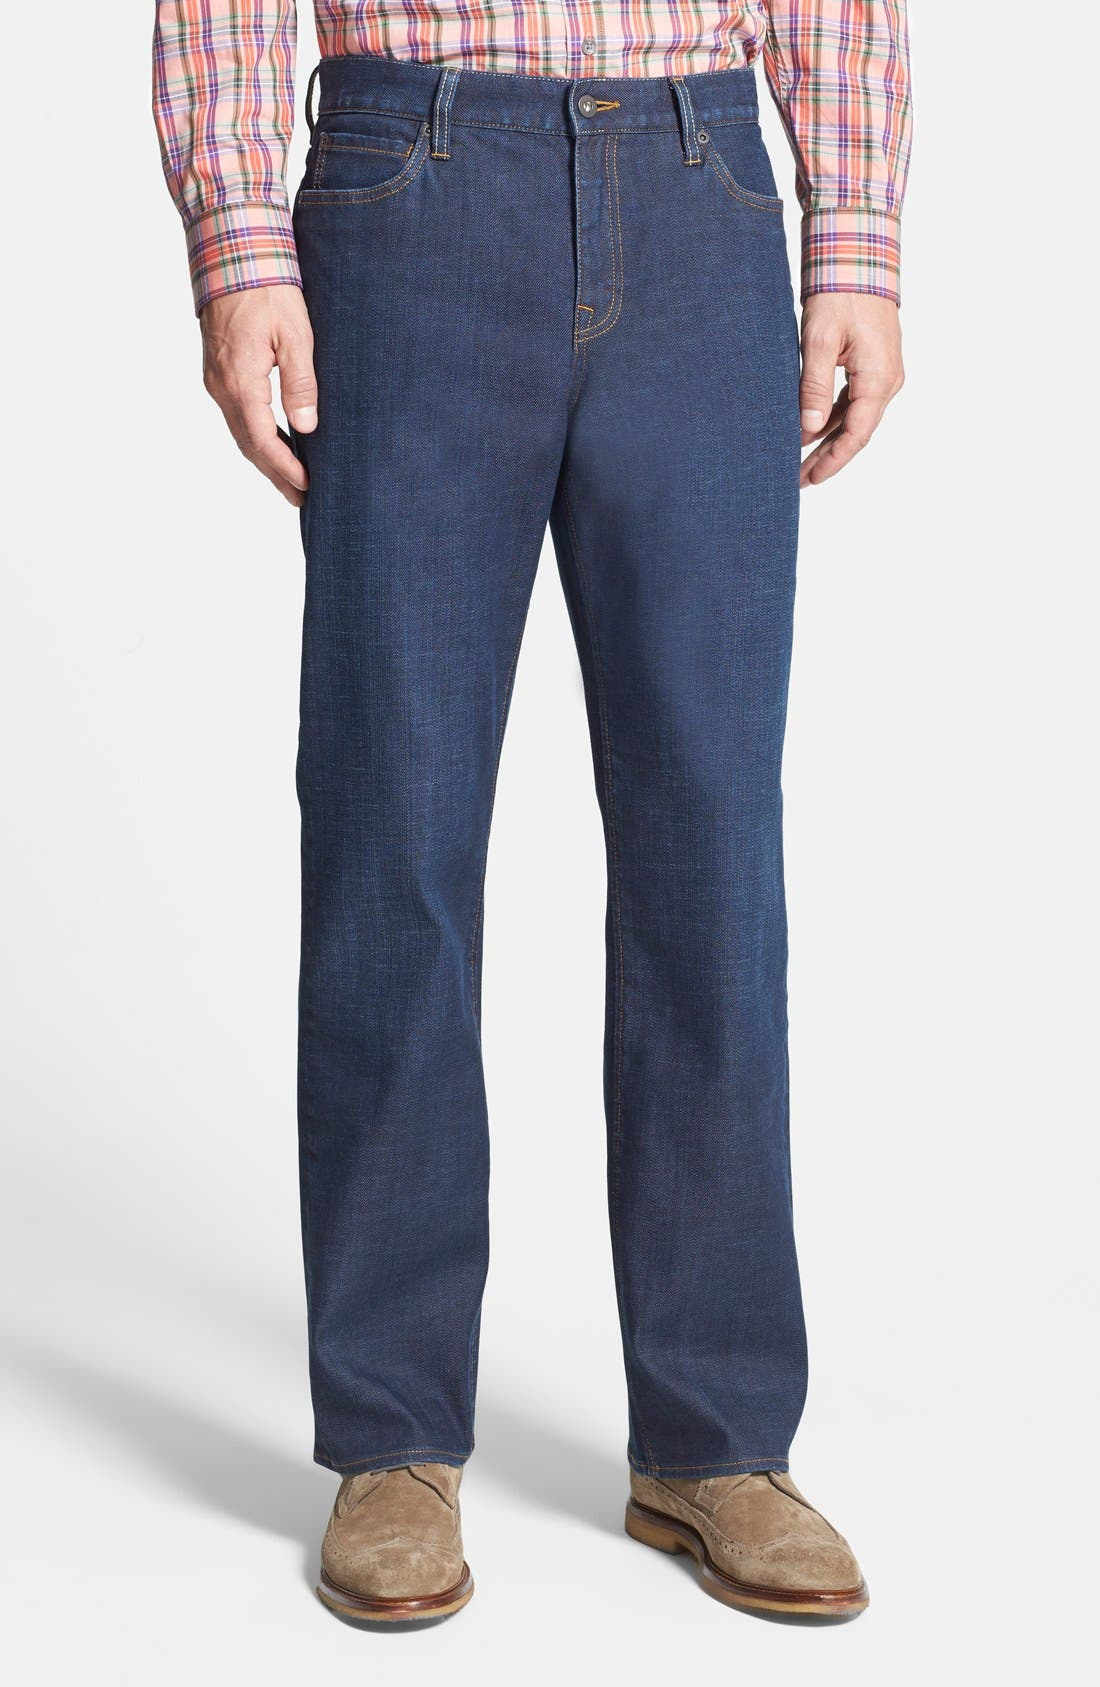 Cutter & Buck 'Greenwood' Relaxed Fit Jeans (Big & Tall)